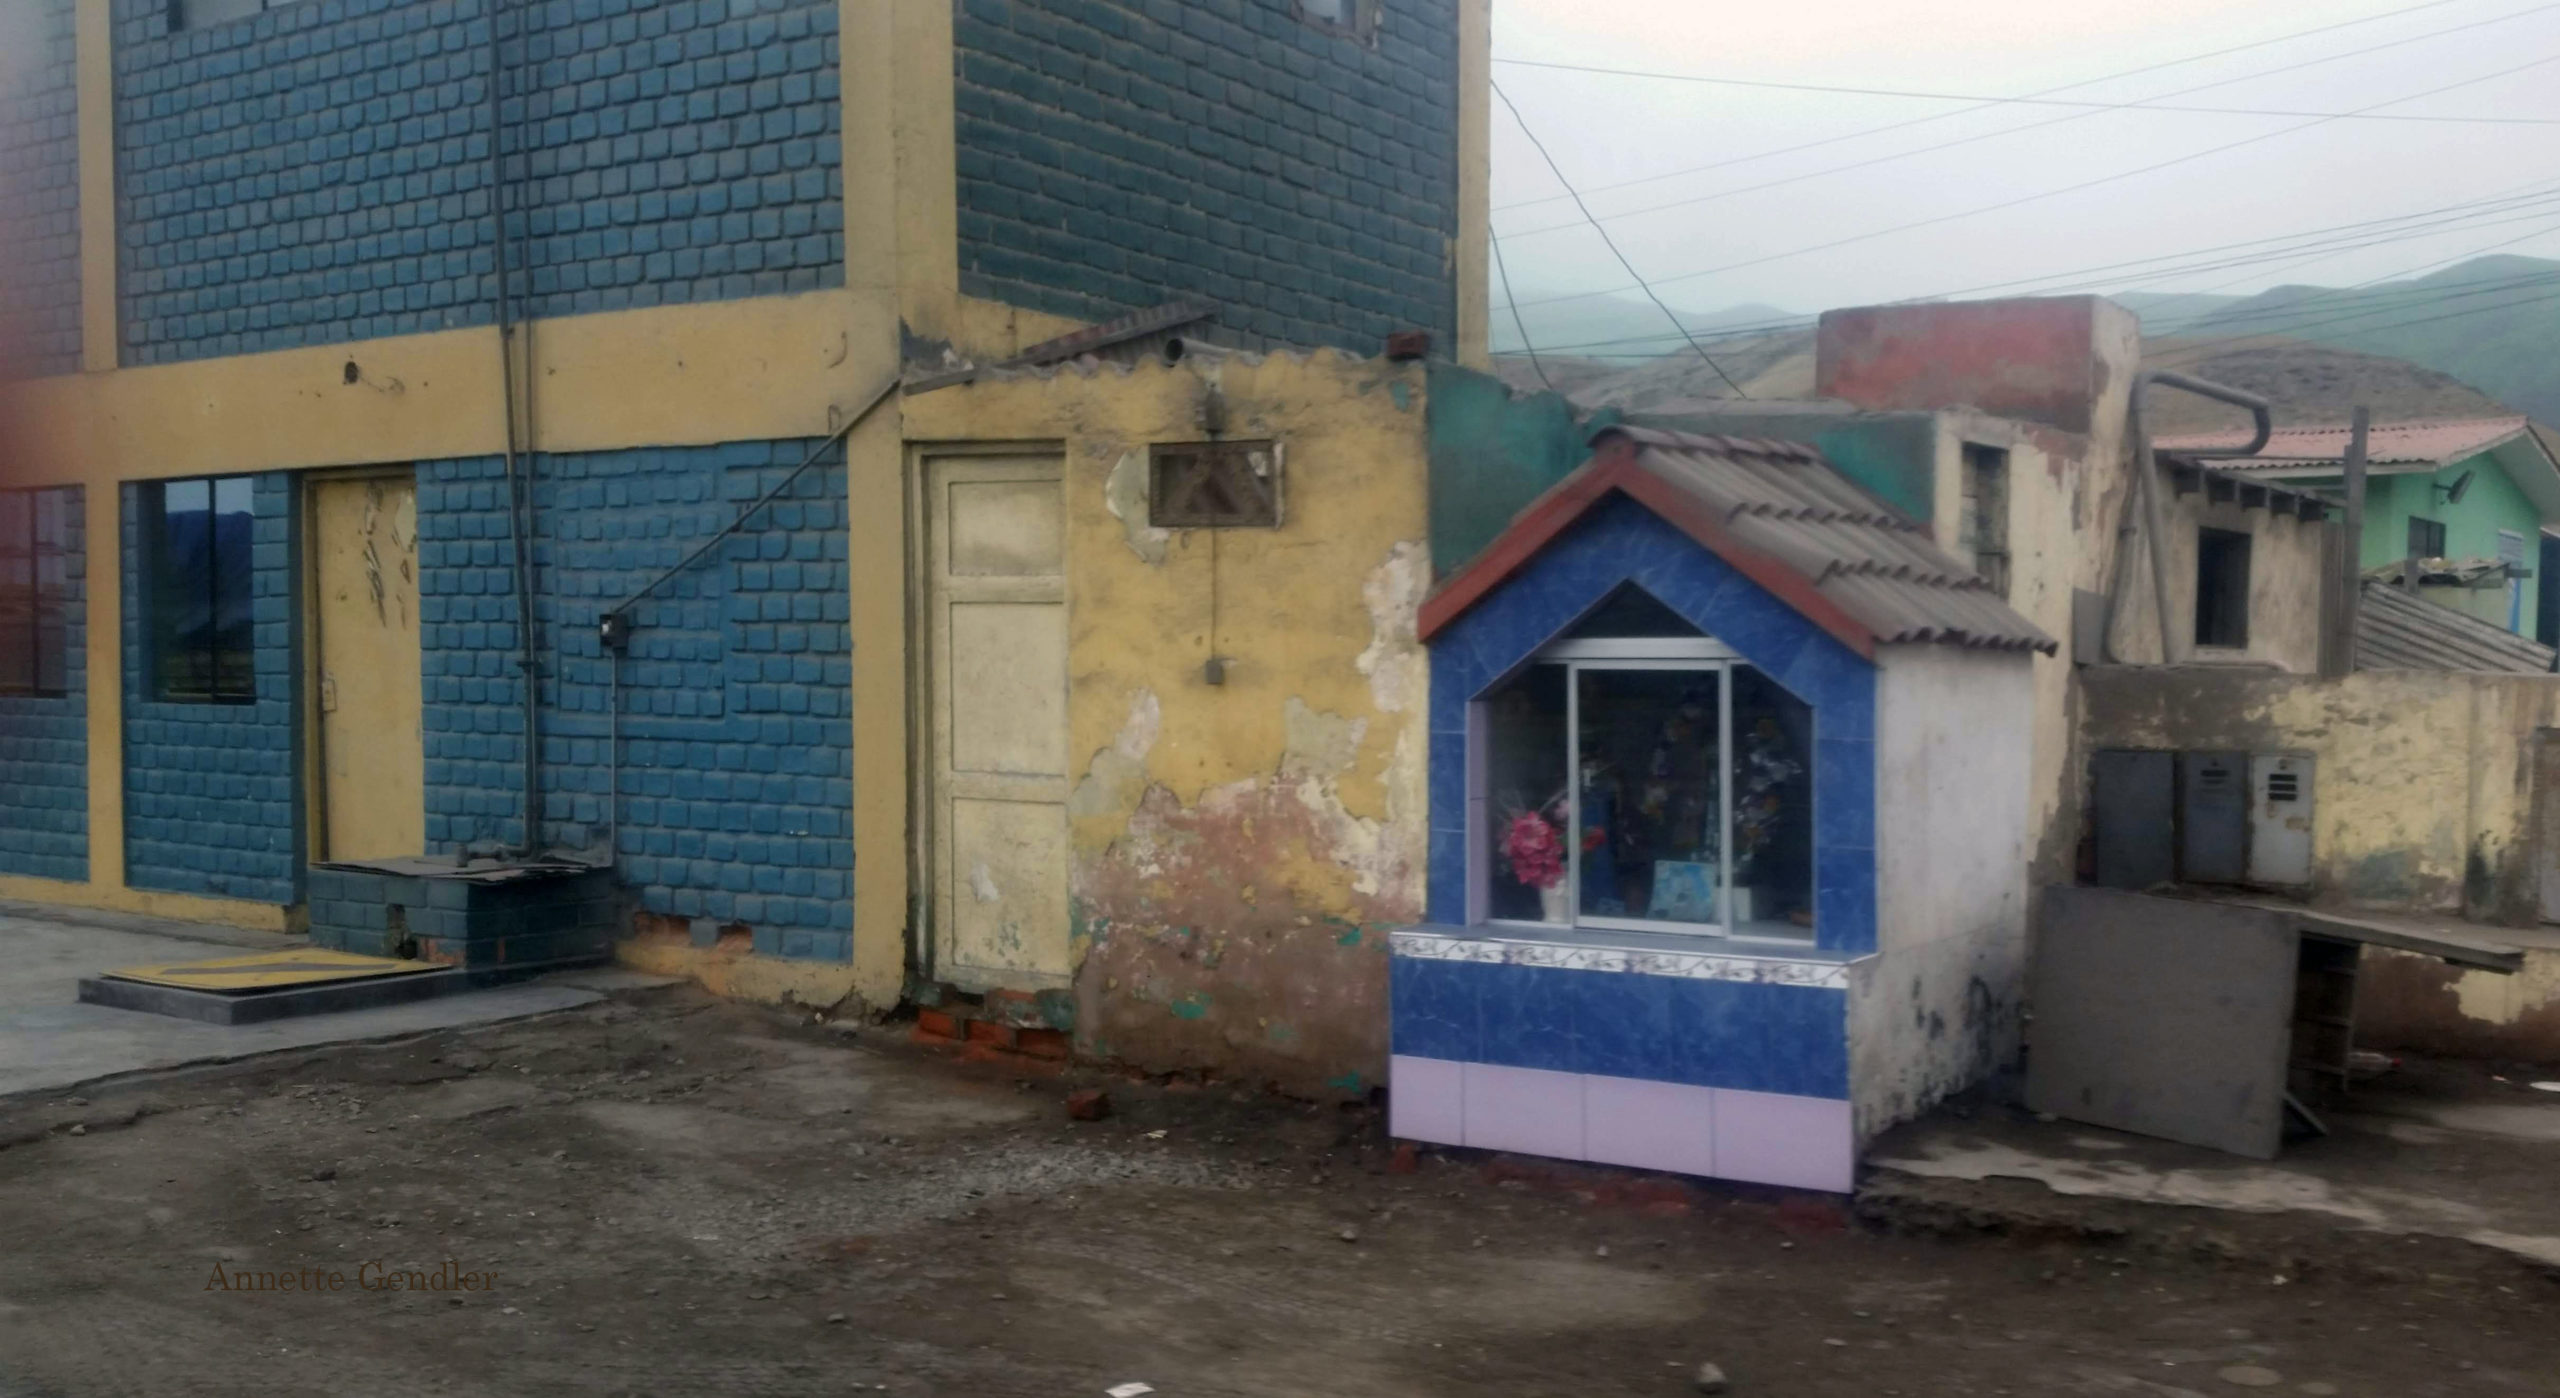 Colorful little blue stone hut shrine in shanty town